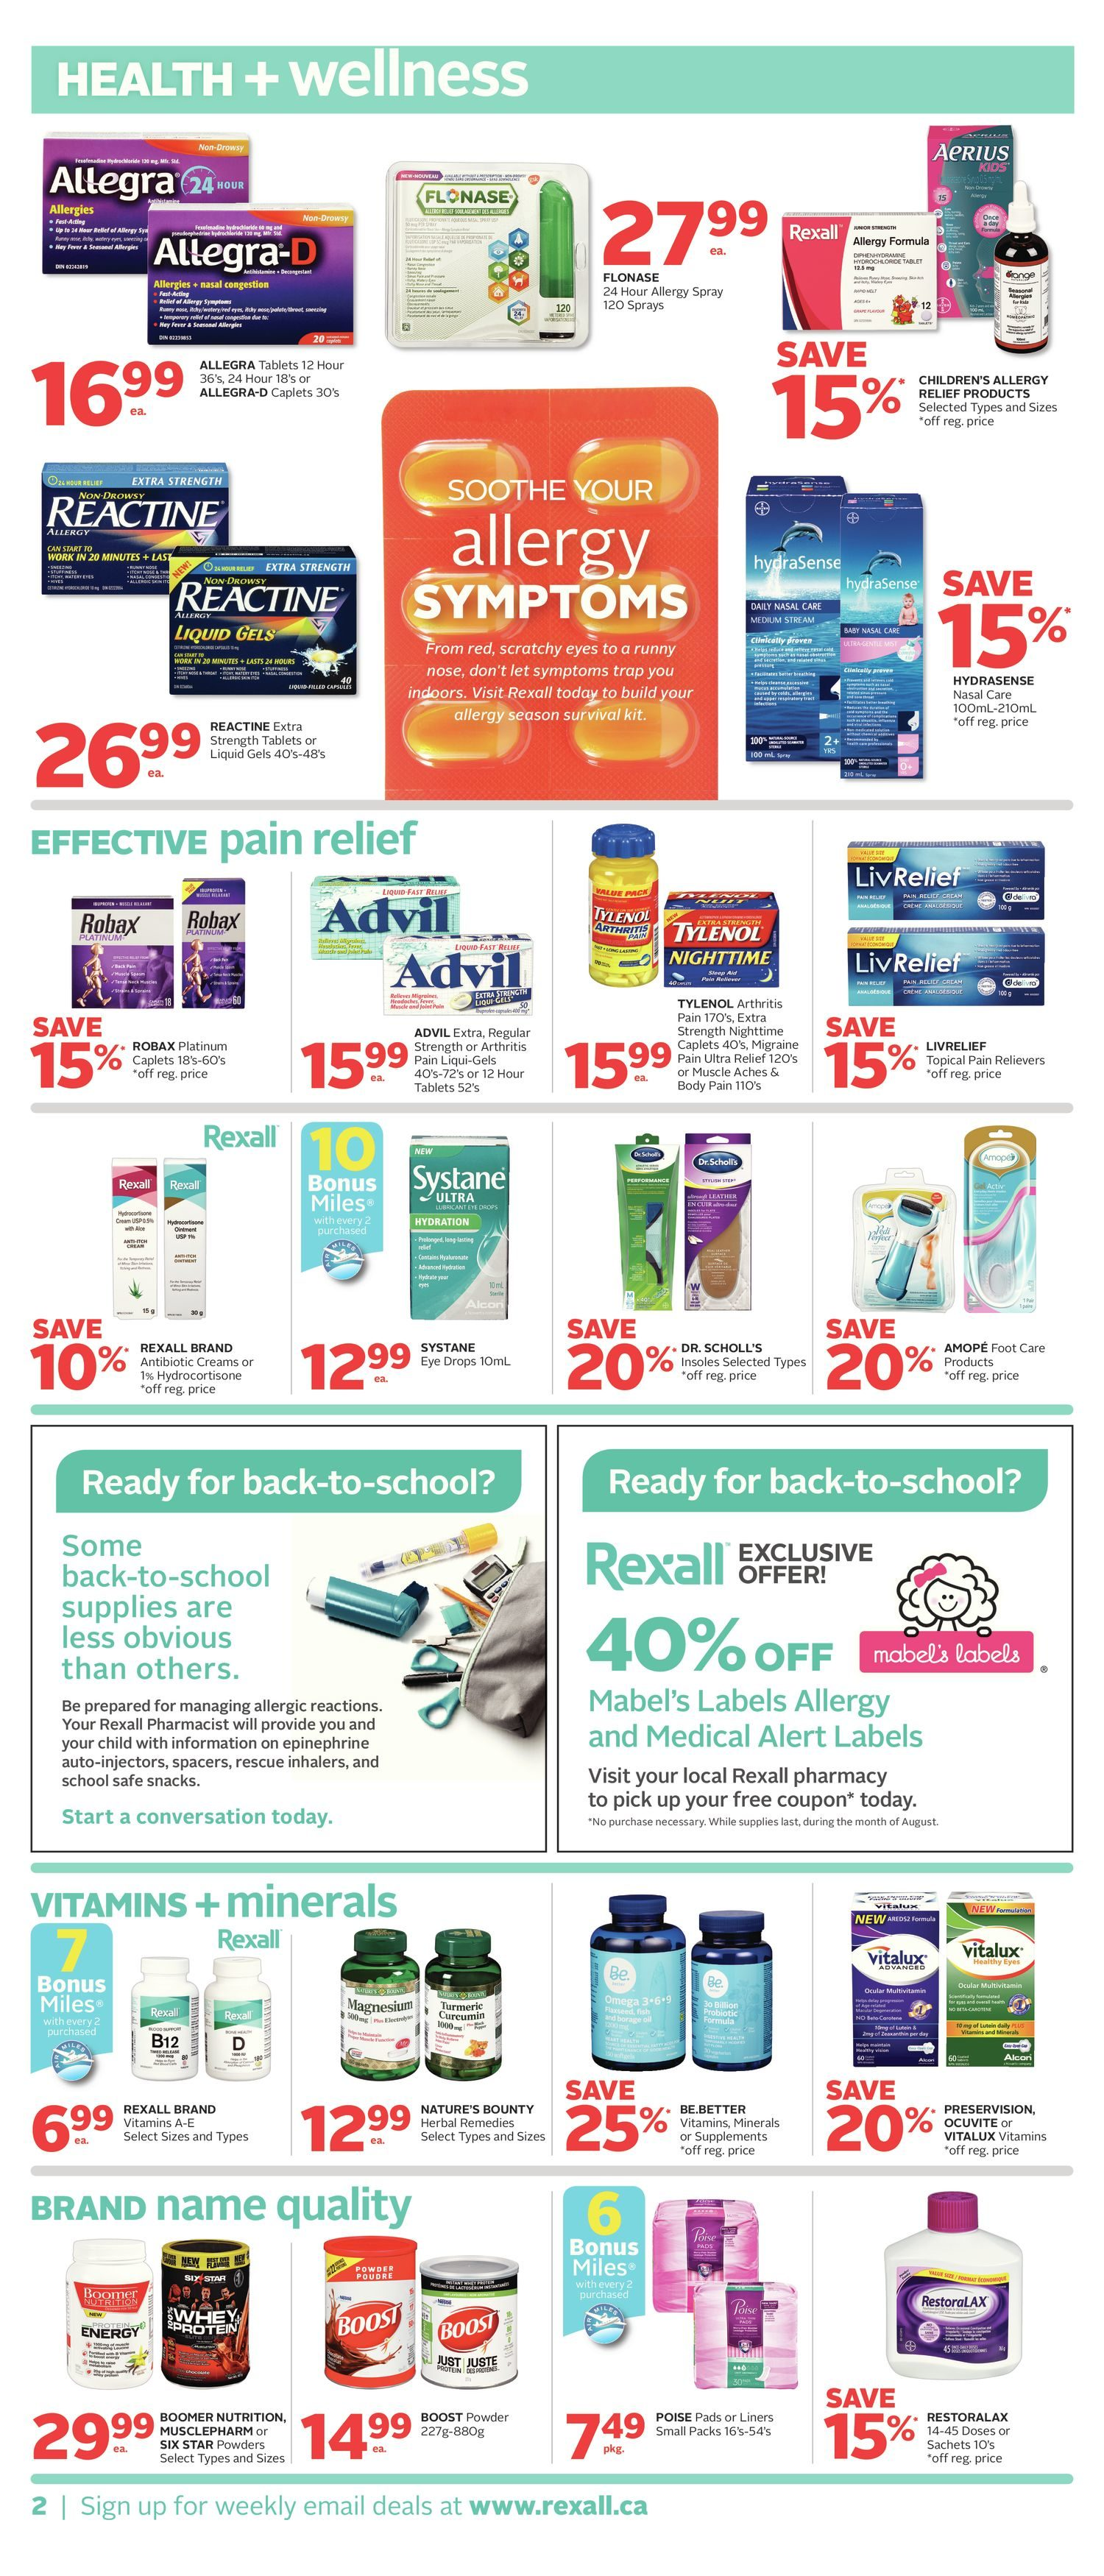 Rexall Weekly Flyer Week Long Savings Aug 3 9 Bite Fighters Advance Mosquito Repellent Lotion With Rolling Ball 100ml